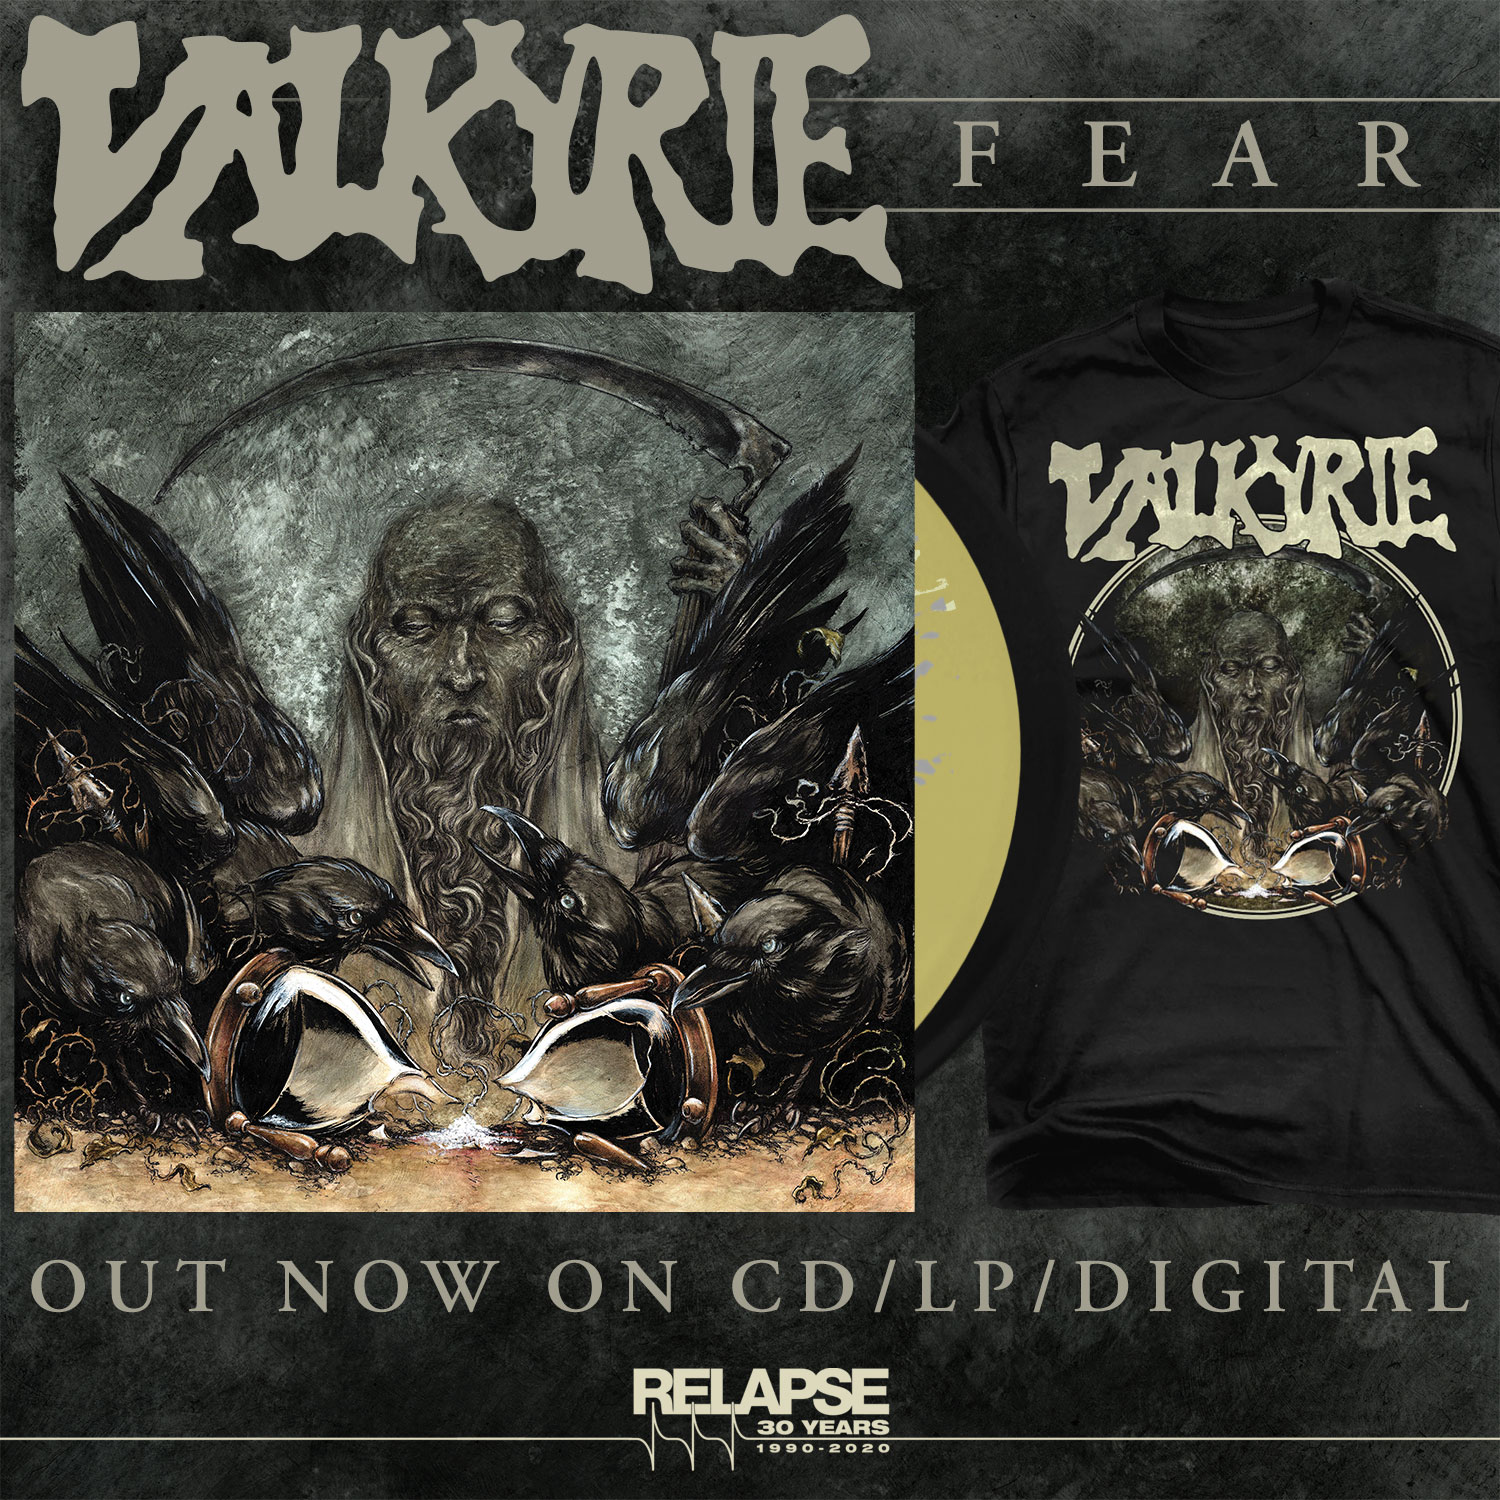 valkyrie-fear-heavy-rock-relapse